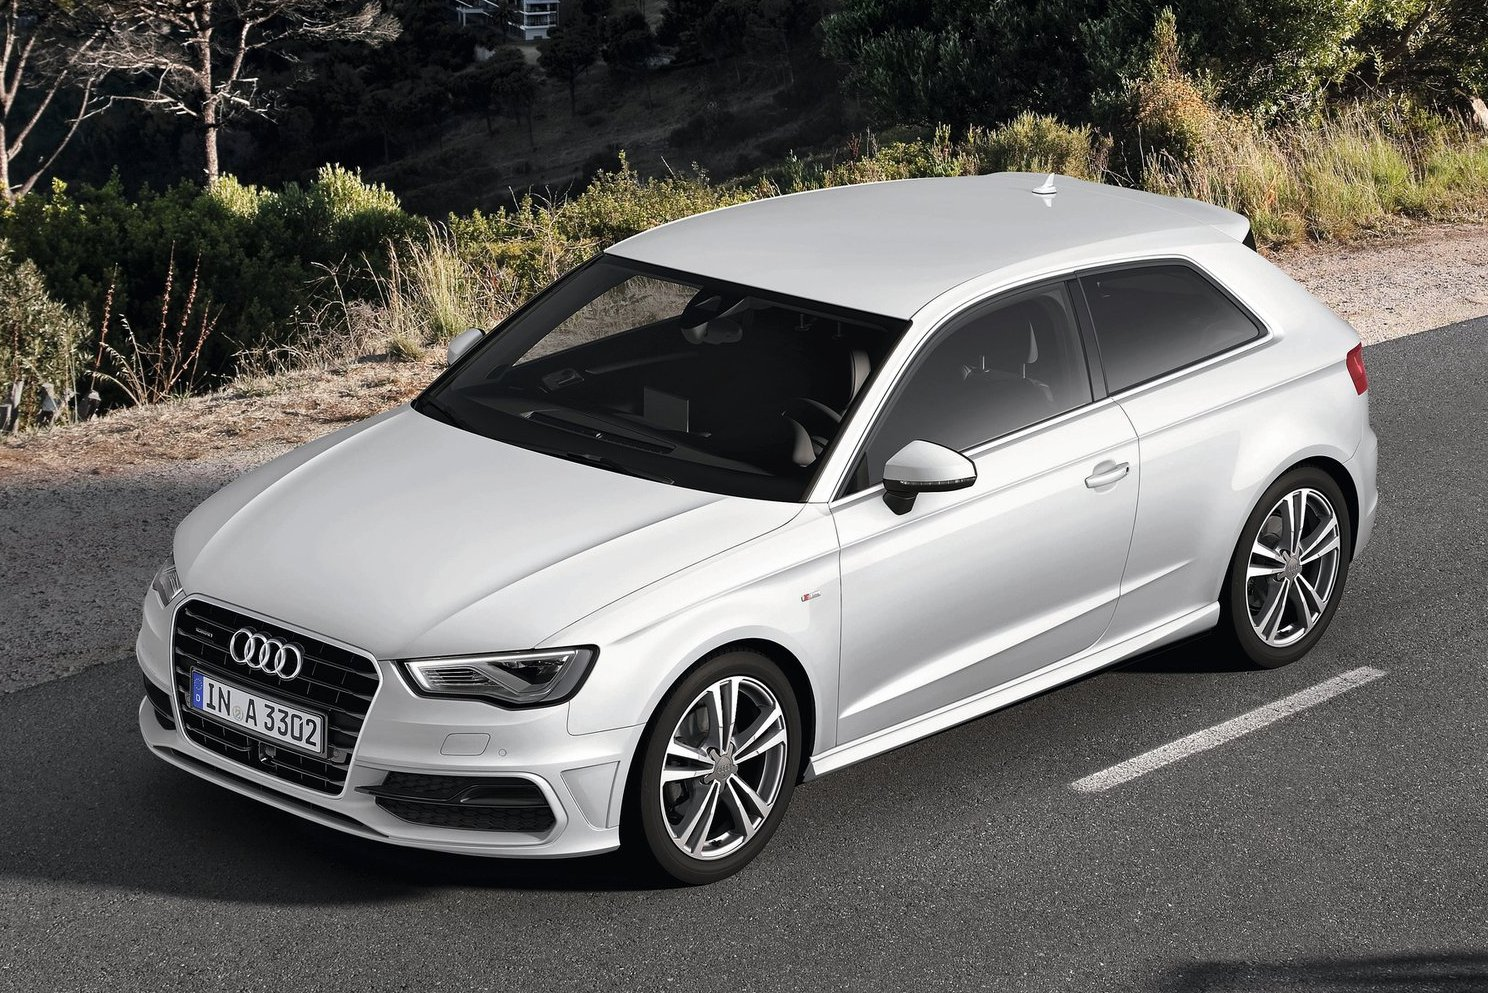 design extrieur 12 52 audi a3 2013 http new audi a3 free fr